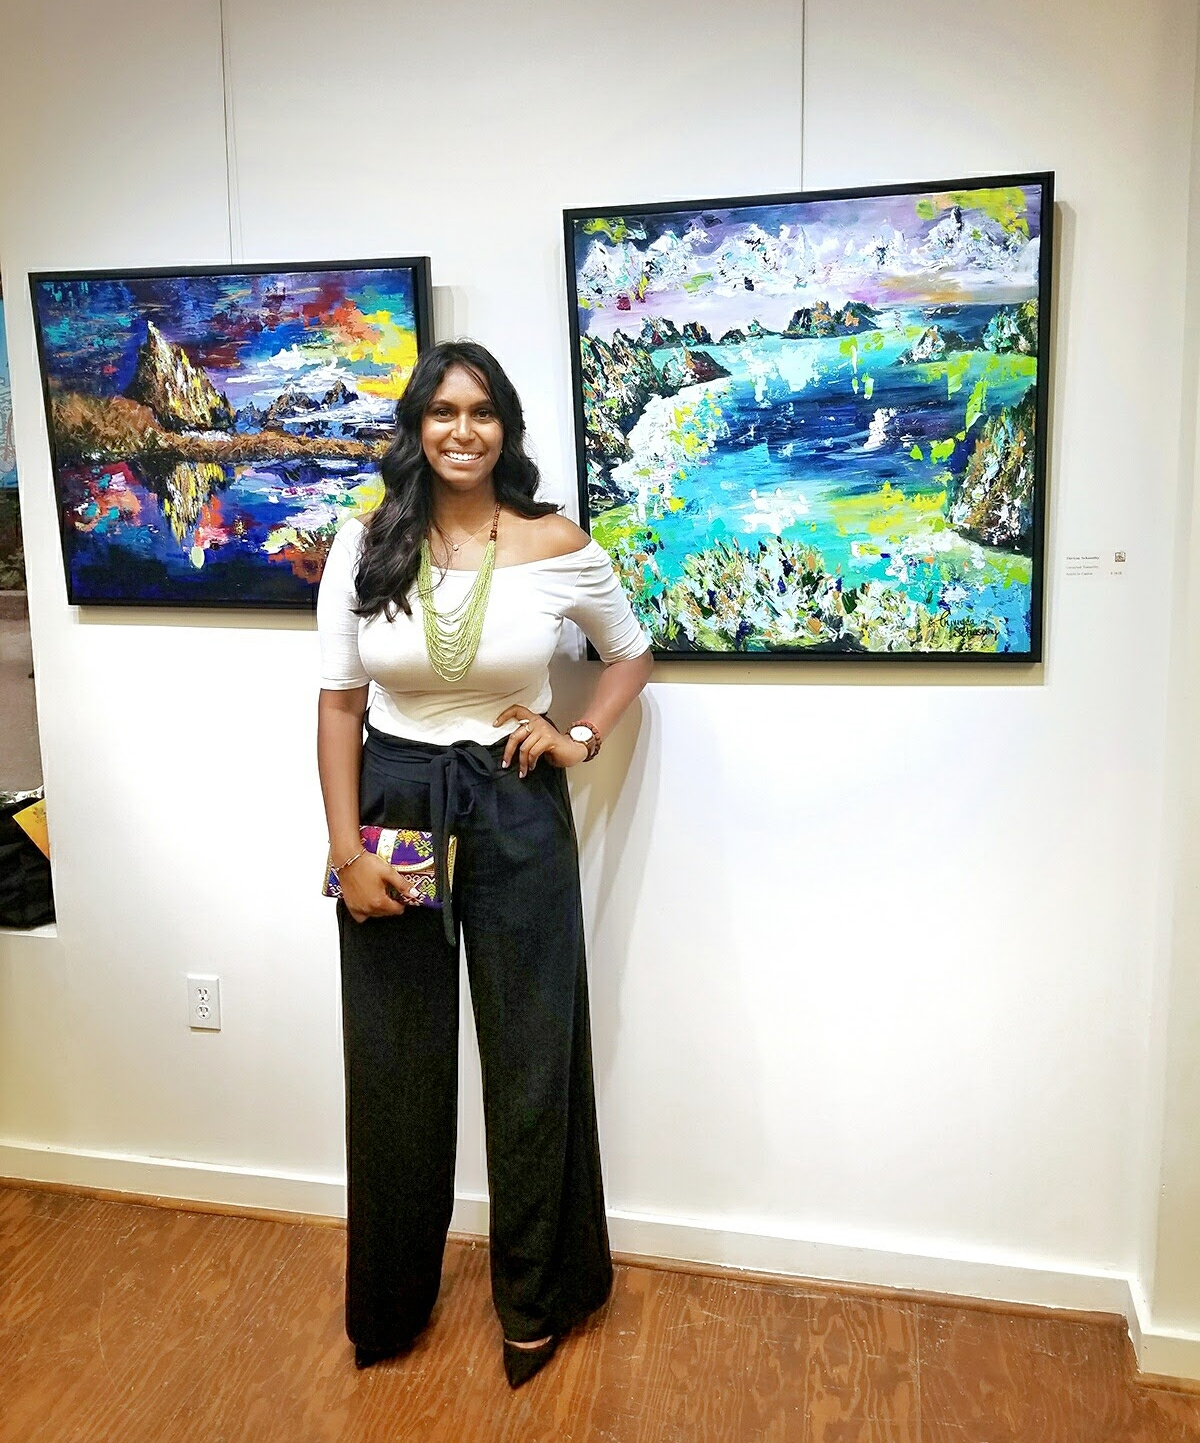 July 2017VISA Arts Festival :Beaux Arts Gallery - Visuals Initiative of South Asia (V.I.S.A) – Arts Festival, aims to bring the visual arts of South Asia as seen through the eyes of Canadians from all ethnic backgrounds. It is designed to bring people from all different cultures together in celebration of 150 years of multiculturalism in Ontario and Canada. These artists will create a trail of art that will capture the essence of South Asia while presenting the nuances of Canada and multiculturalism.